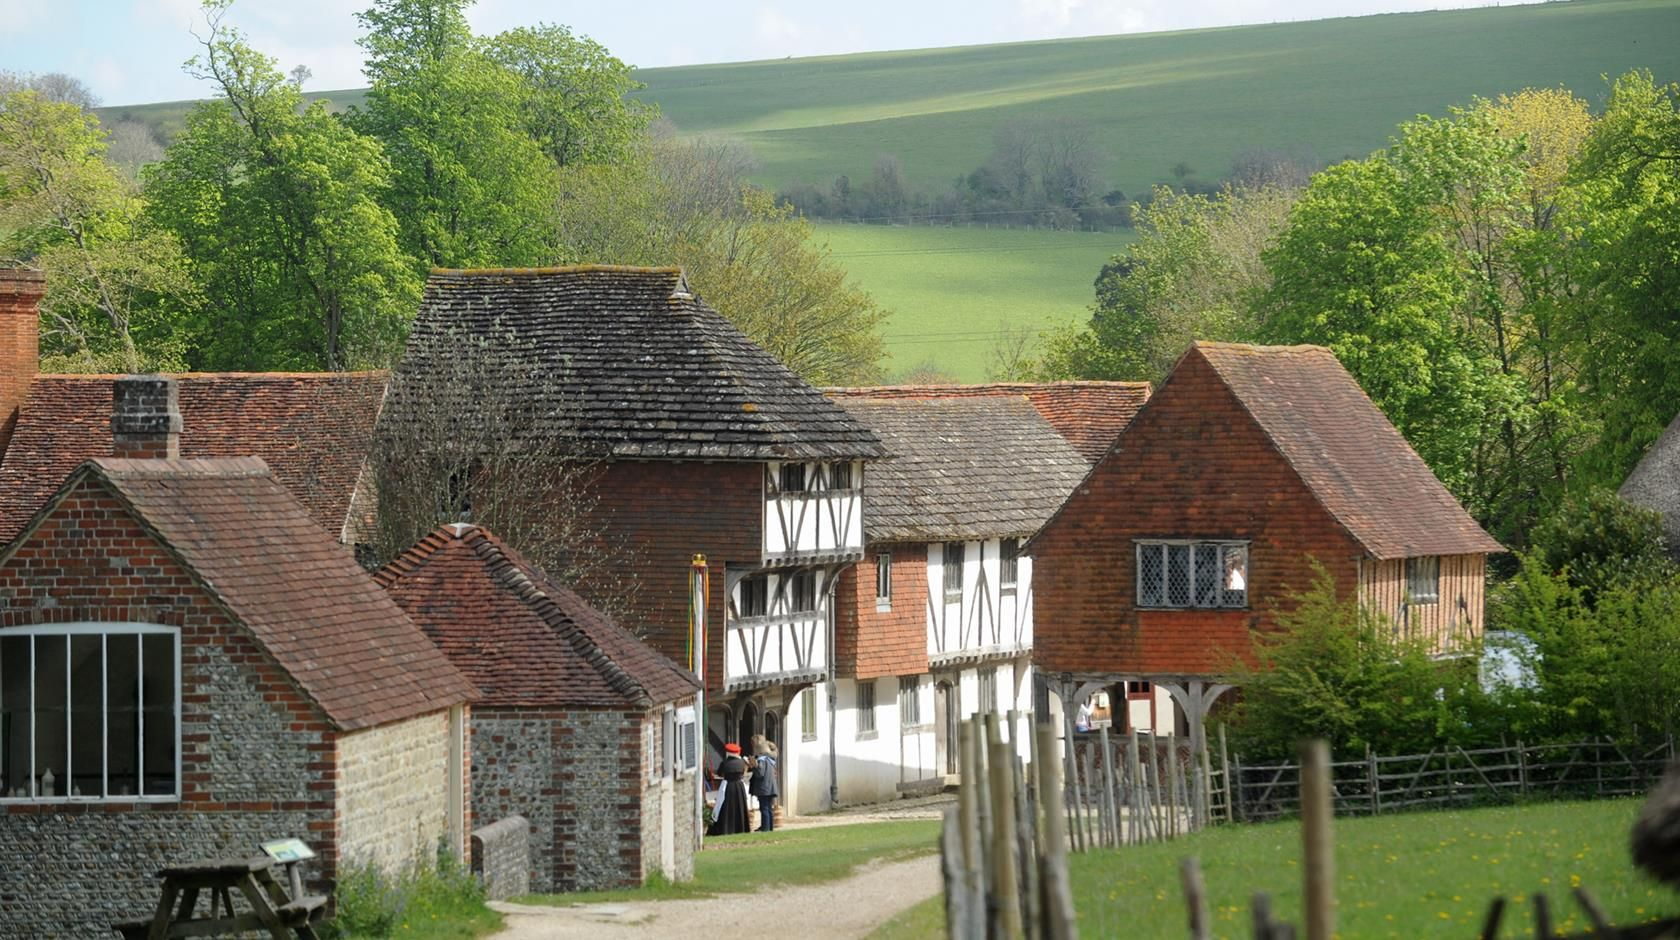 Tudor buildings at Weald and Downland Living Museum in